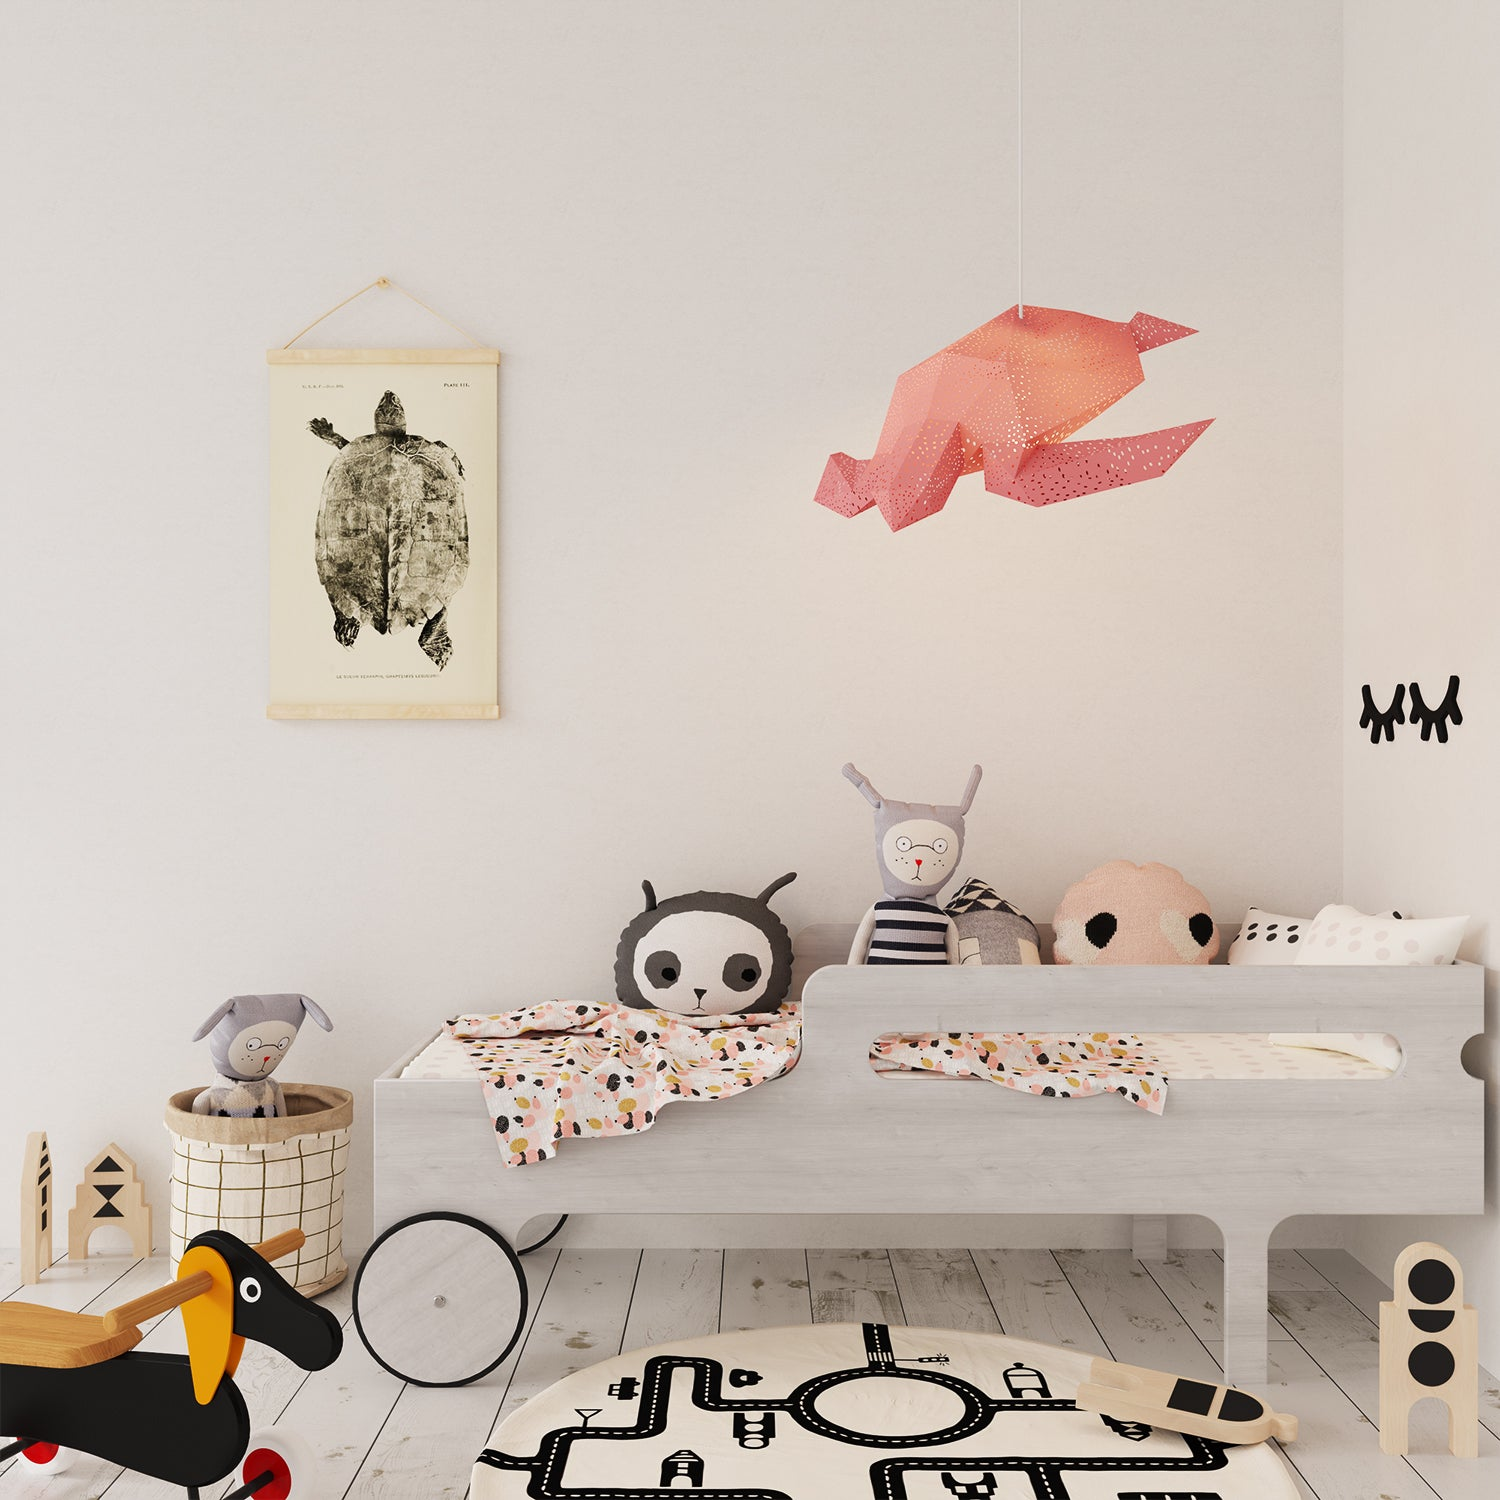 There is the pink Sea Turtle lantern hanging in a kids' room with bed, carpet and a poster on the wall.